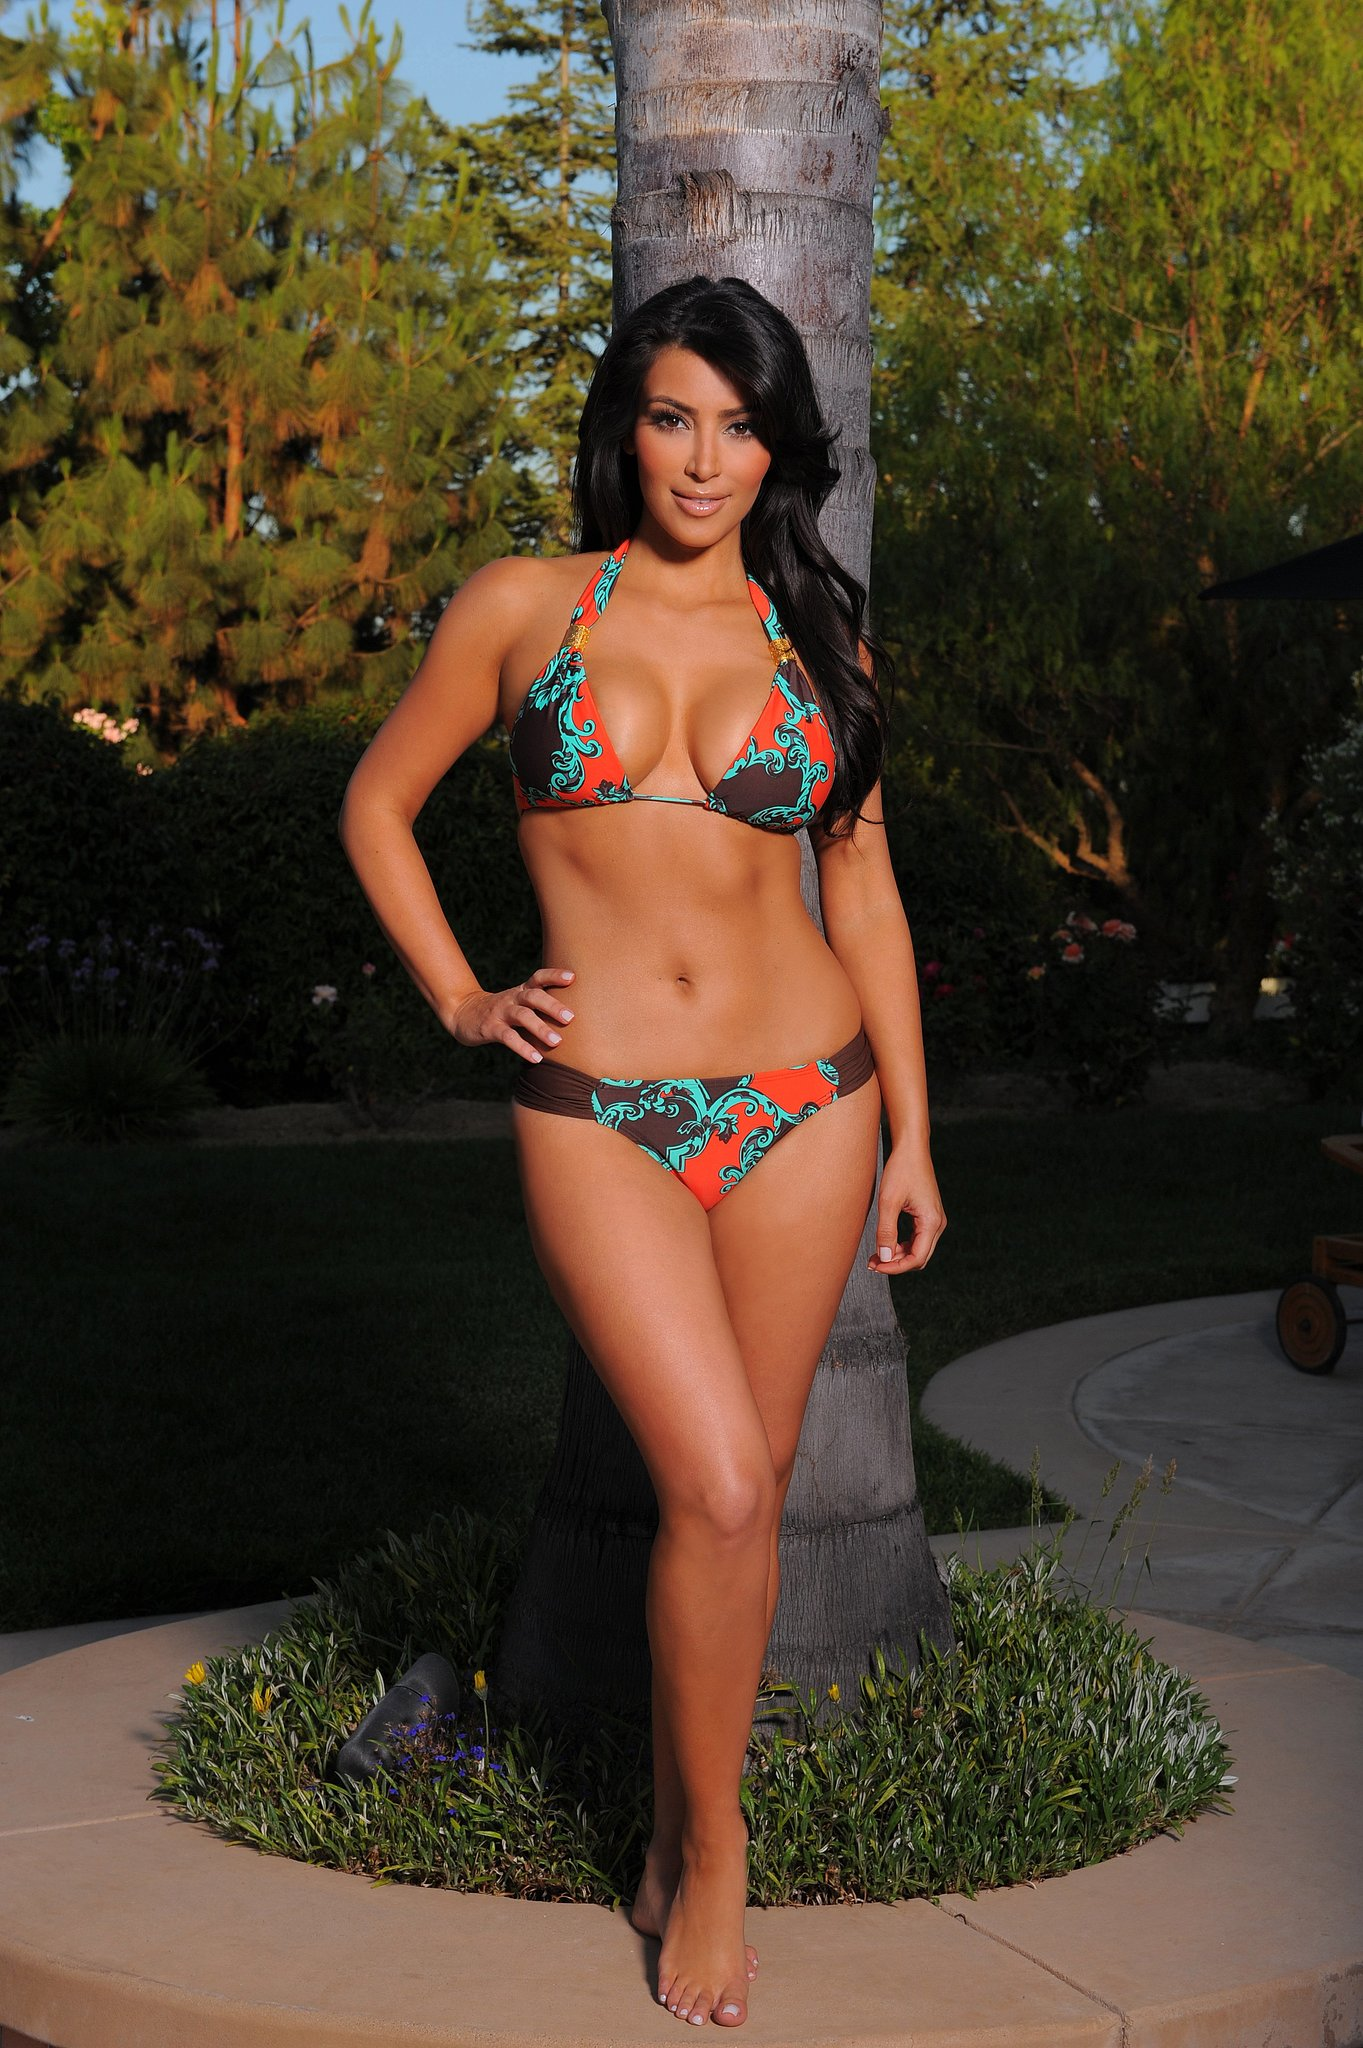 Kim Kardashian showed off her hot bikini body during an LA photo shoot in July 2009.